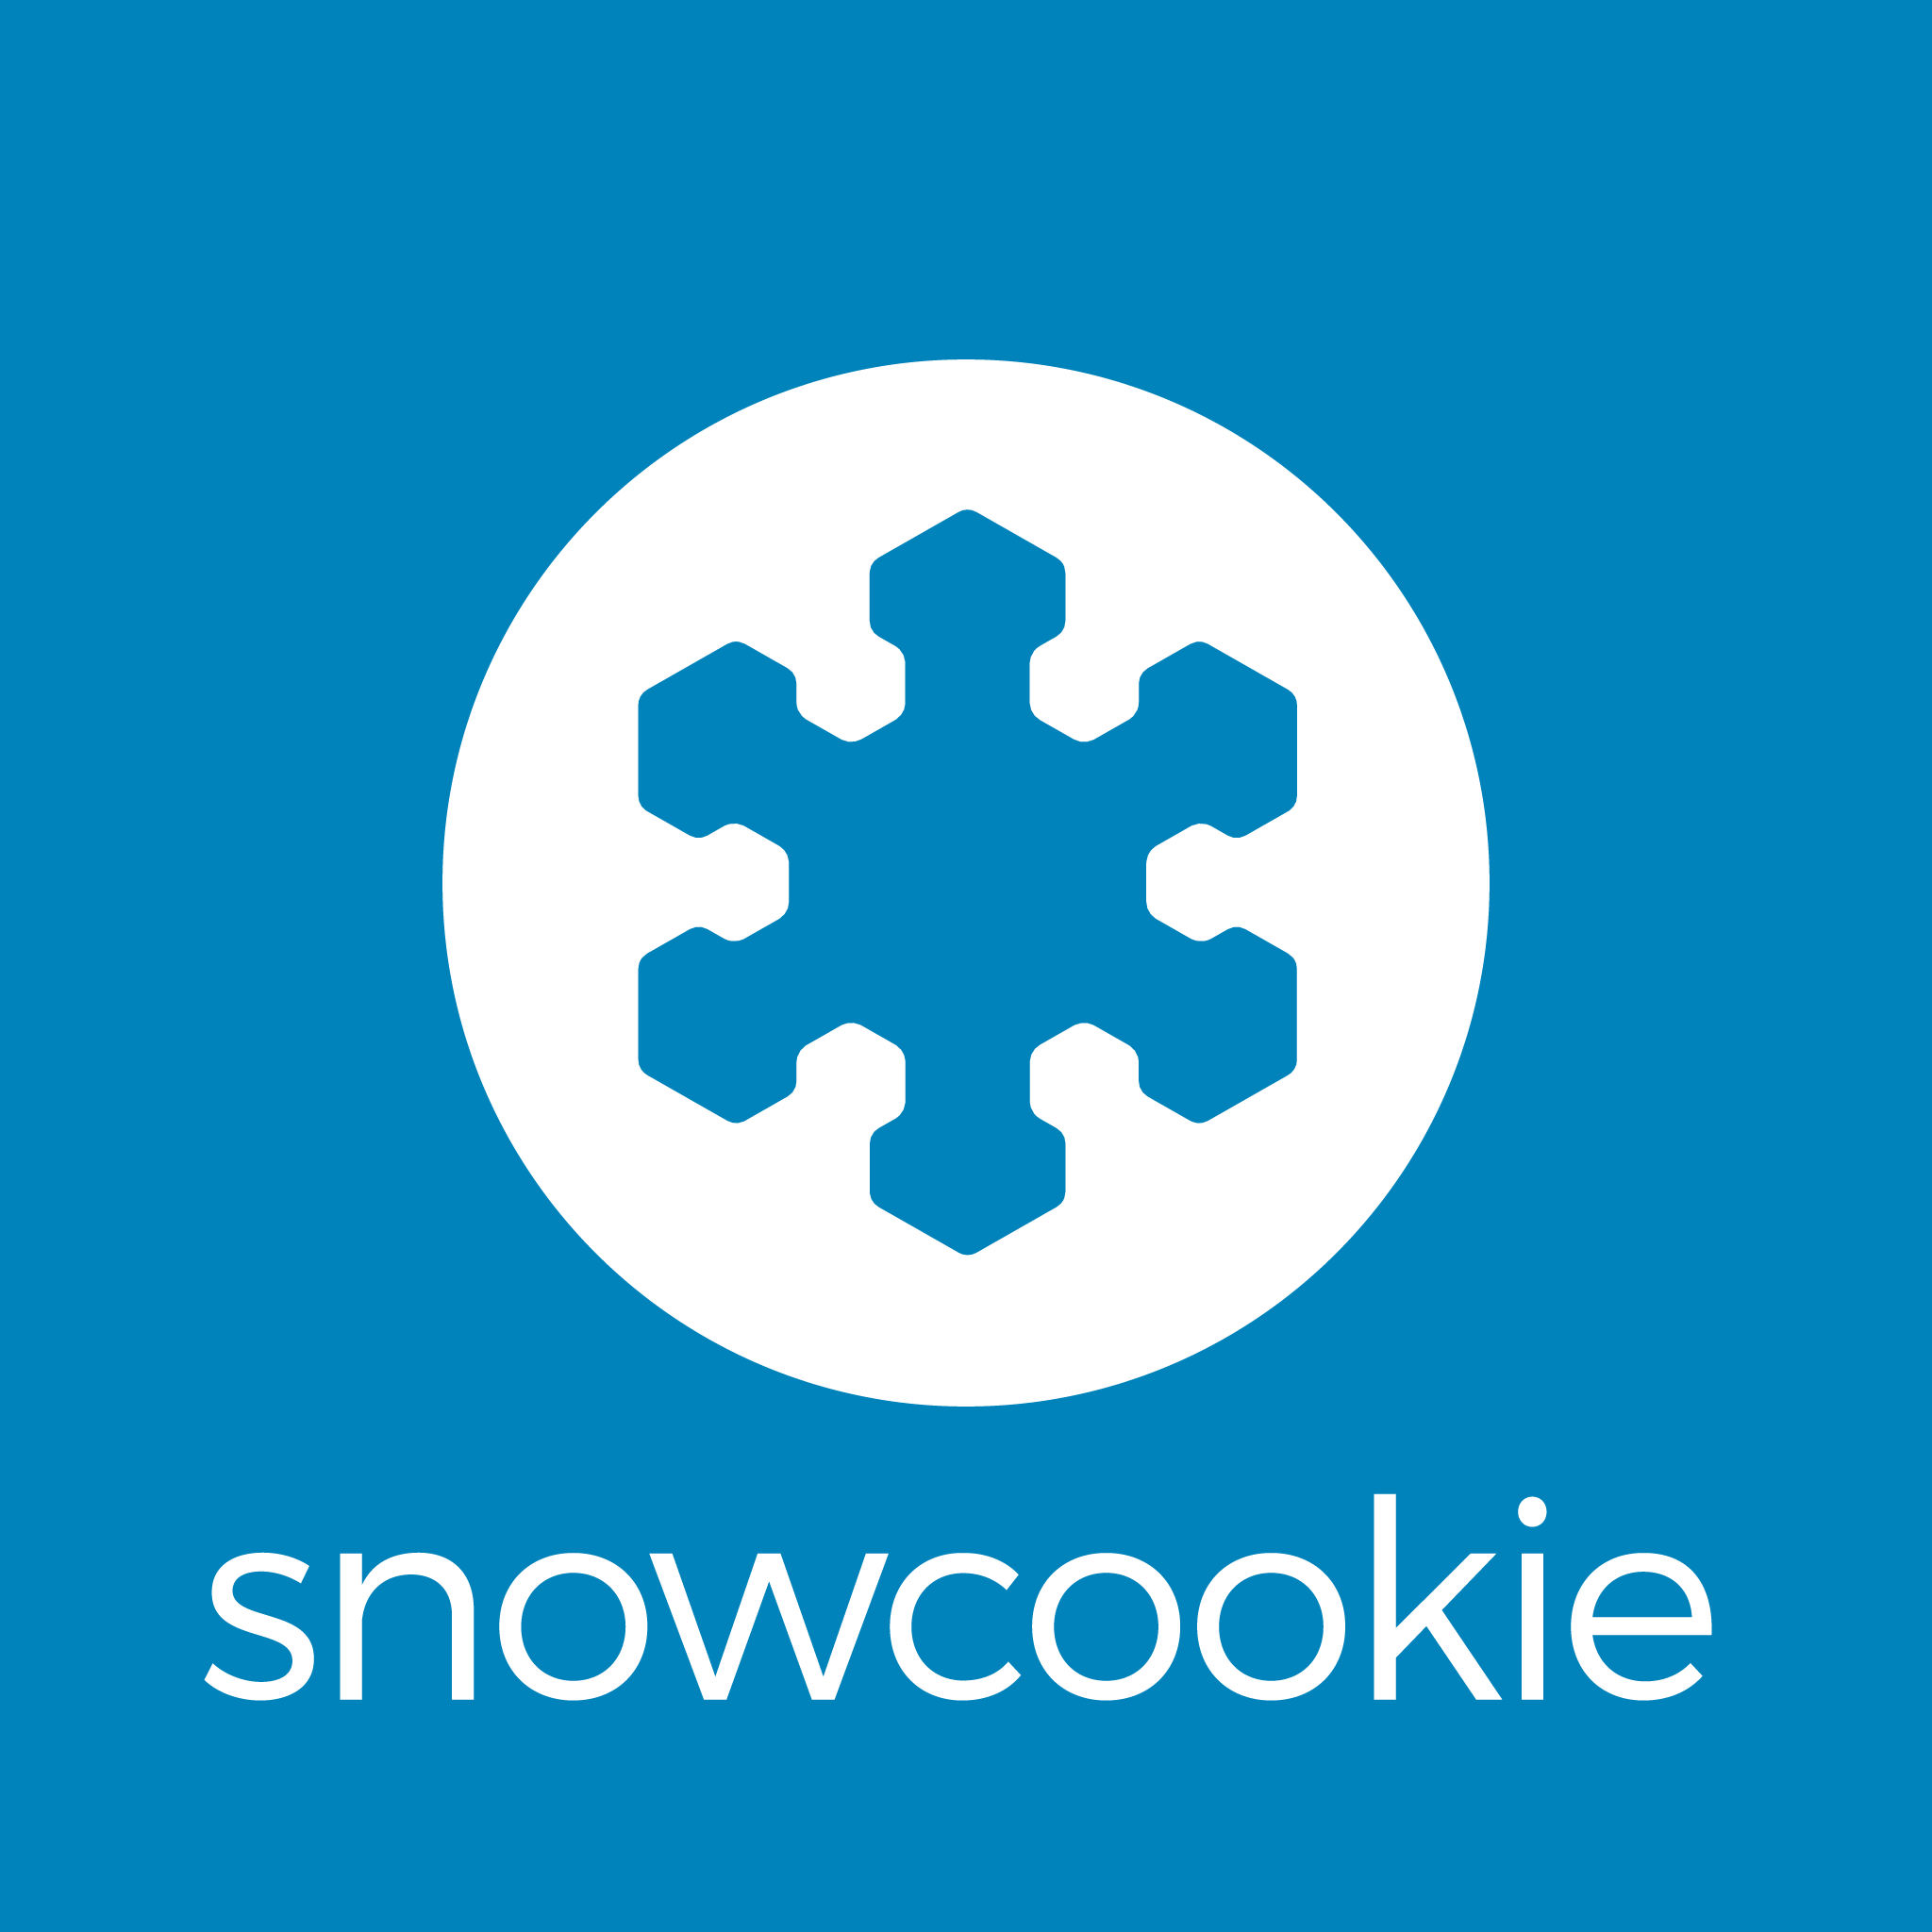 Snowcookie Launches A Smart Ski Technology That Promises To Revolutionize The World Of Skiing With Images Financial News New World Product Launch